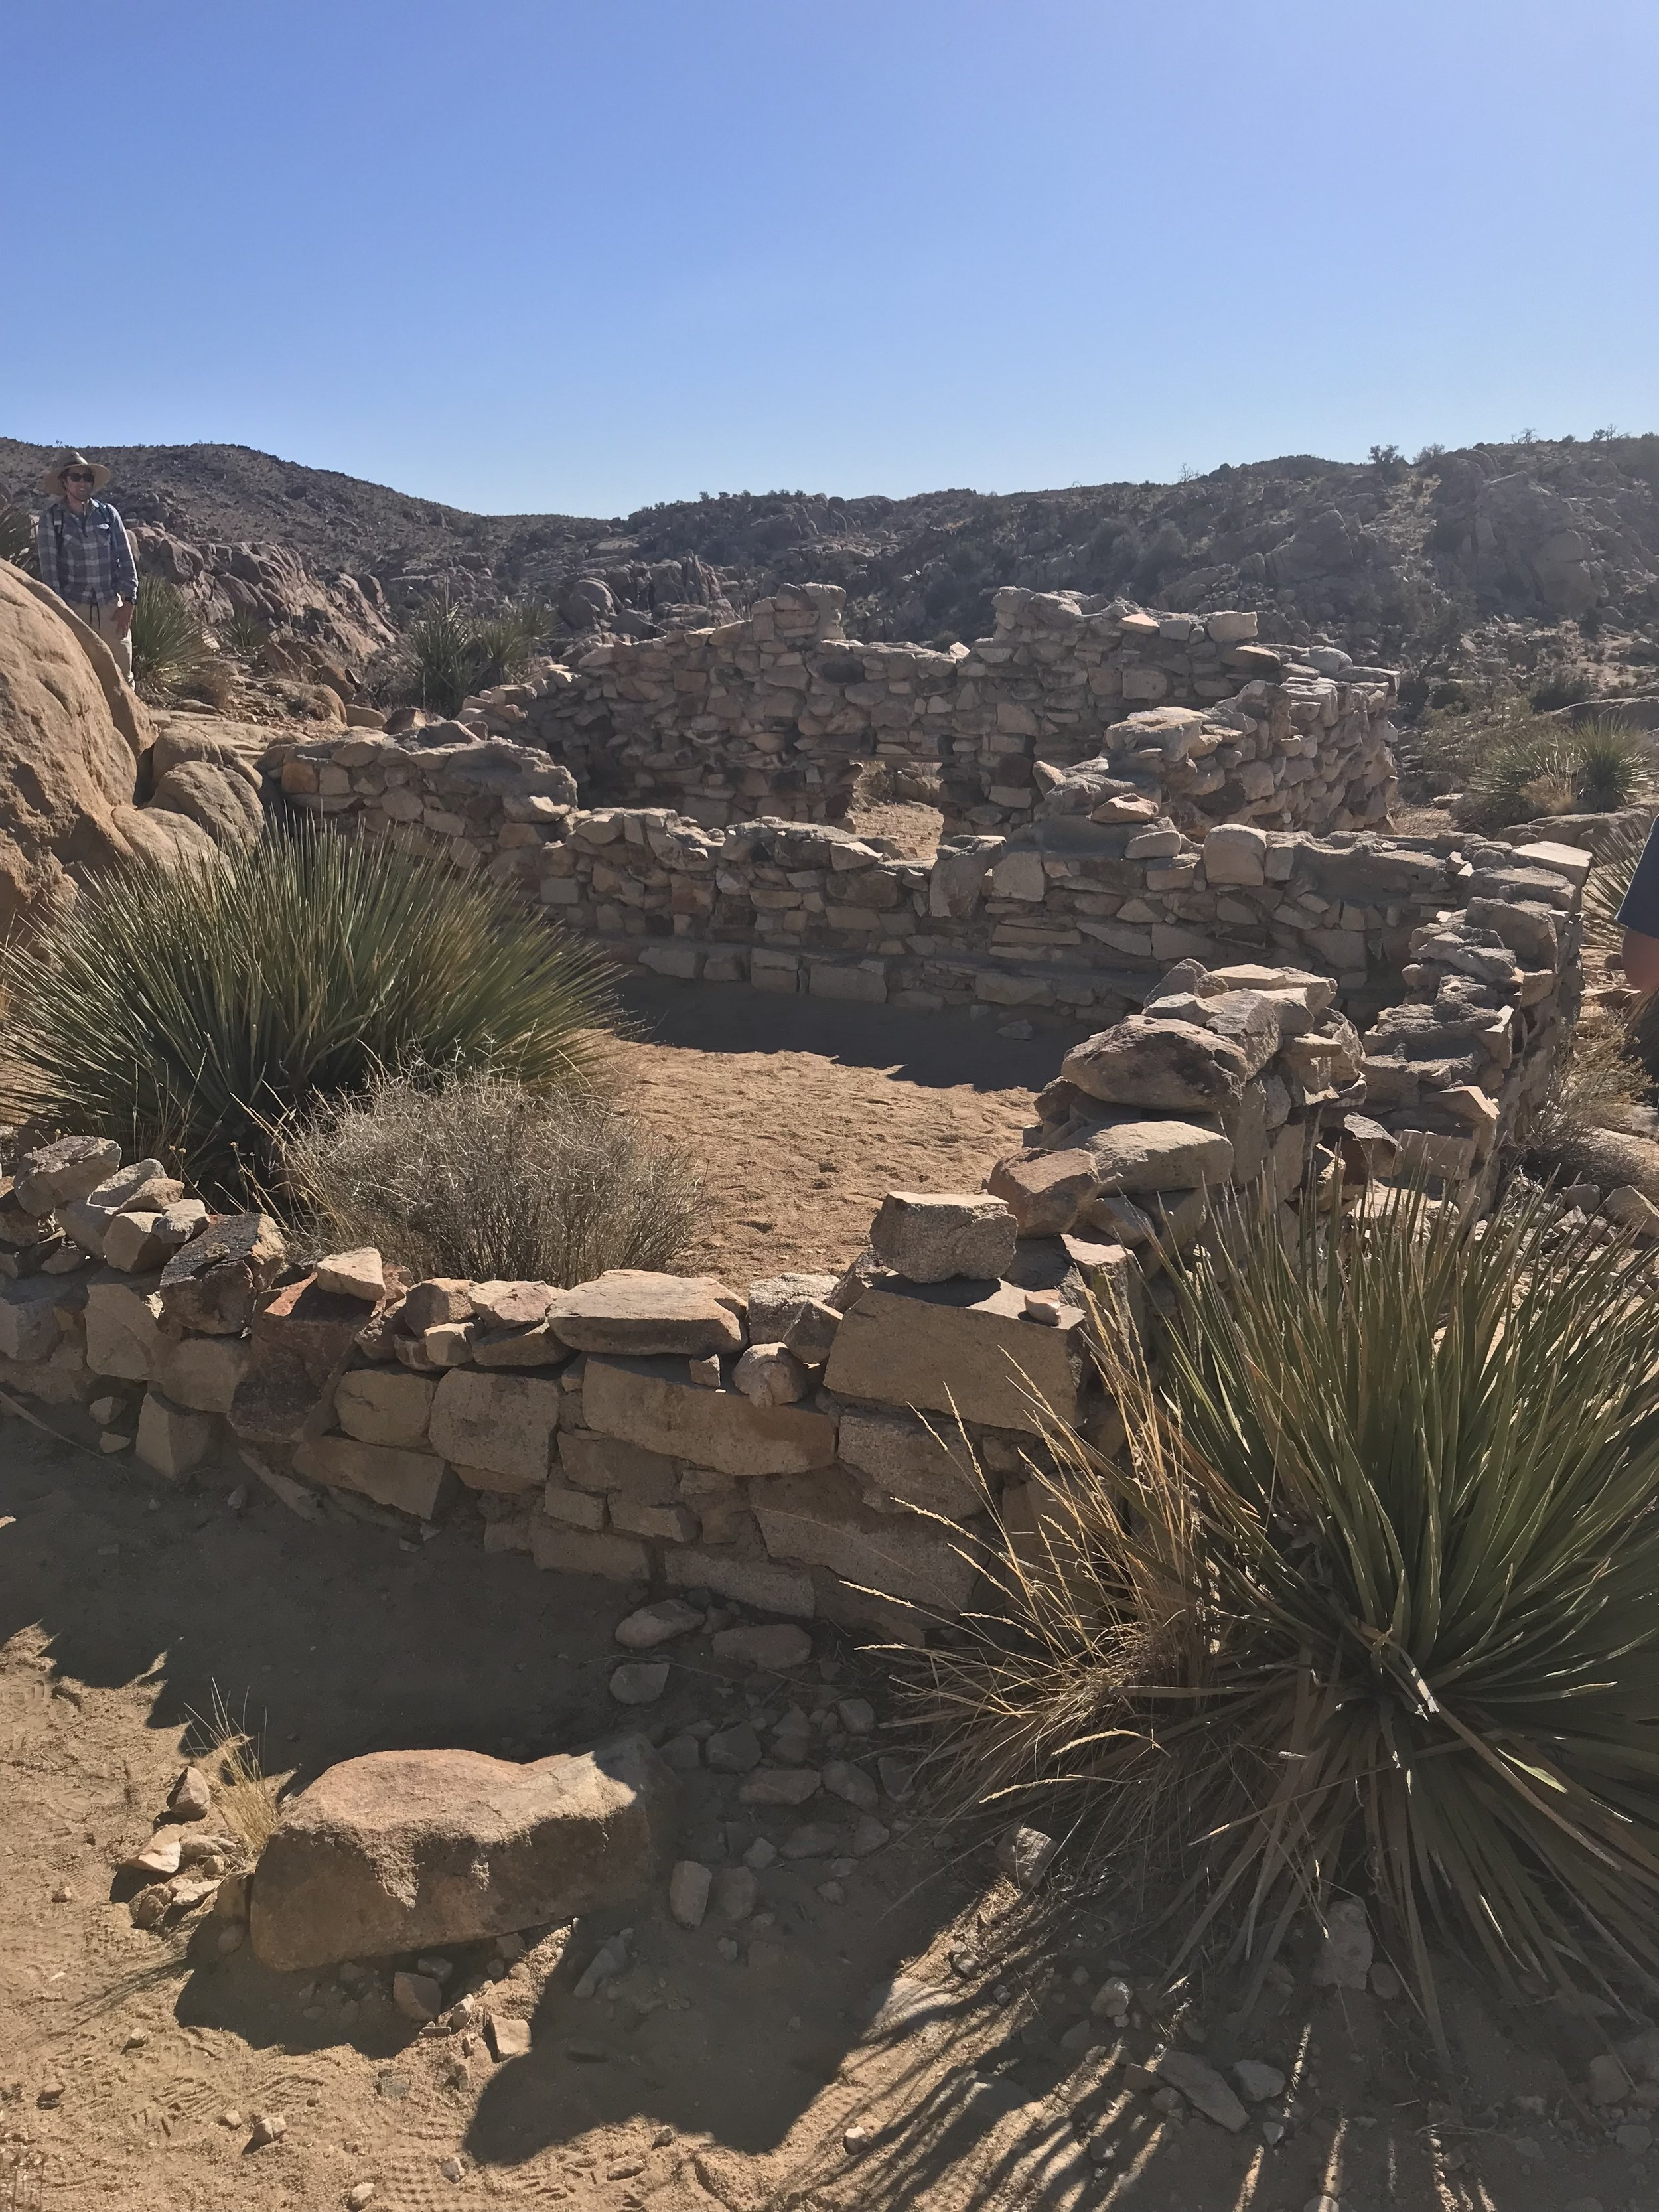 From the Desert Queen mine parking area, hikers will want to turn off at the ruins of this old bunkhouse to pass the Desert Queen mine before hiking toward the Eagle Cliff.